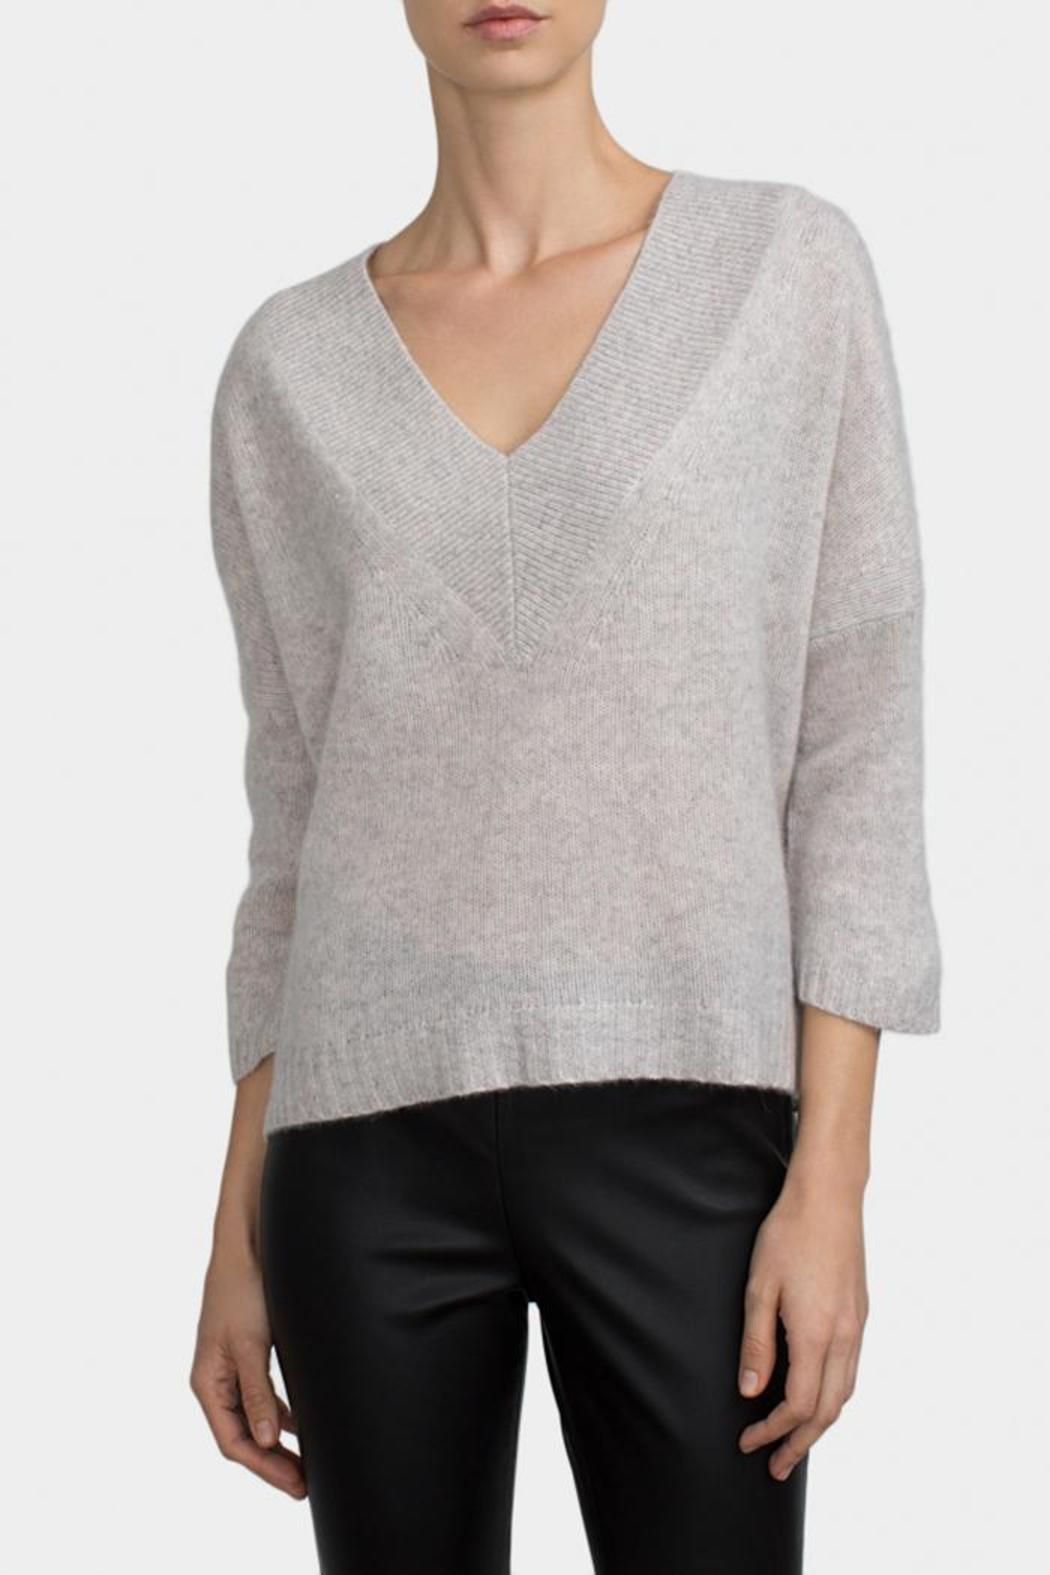 98104e7c7c White + Warren V-Neck Cashmere Top from District of Columbia by The ...